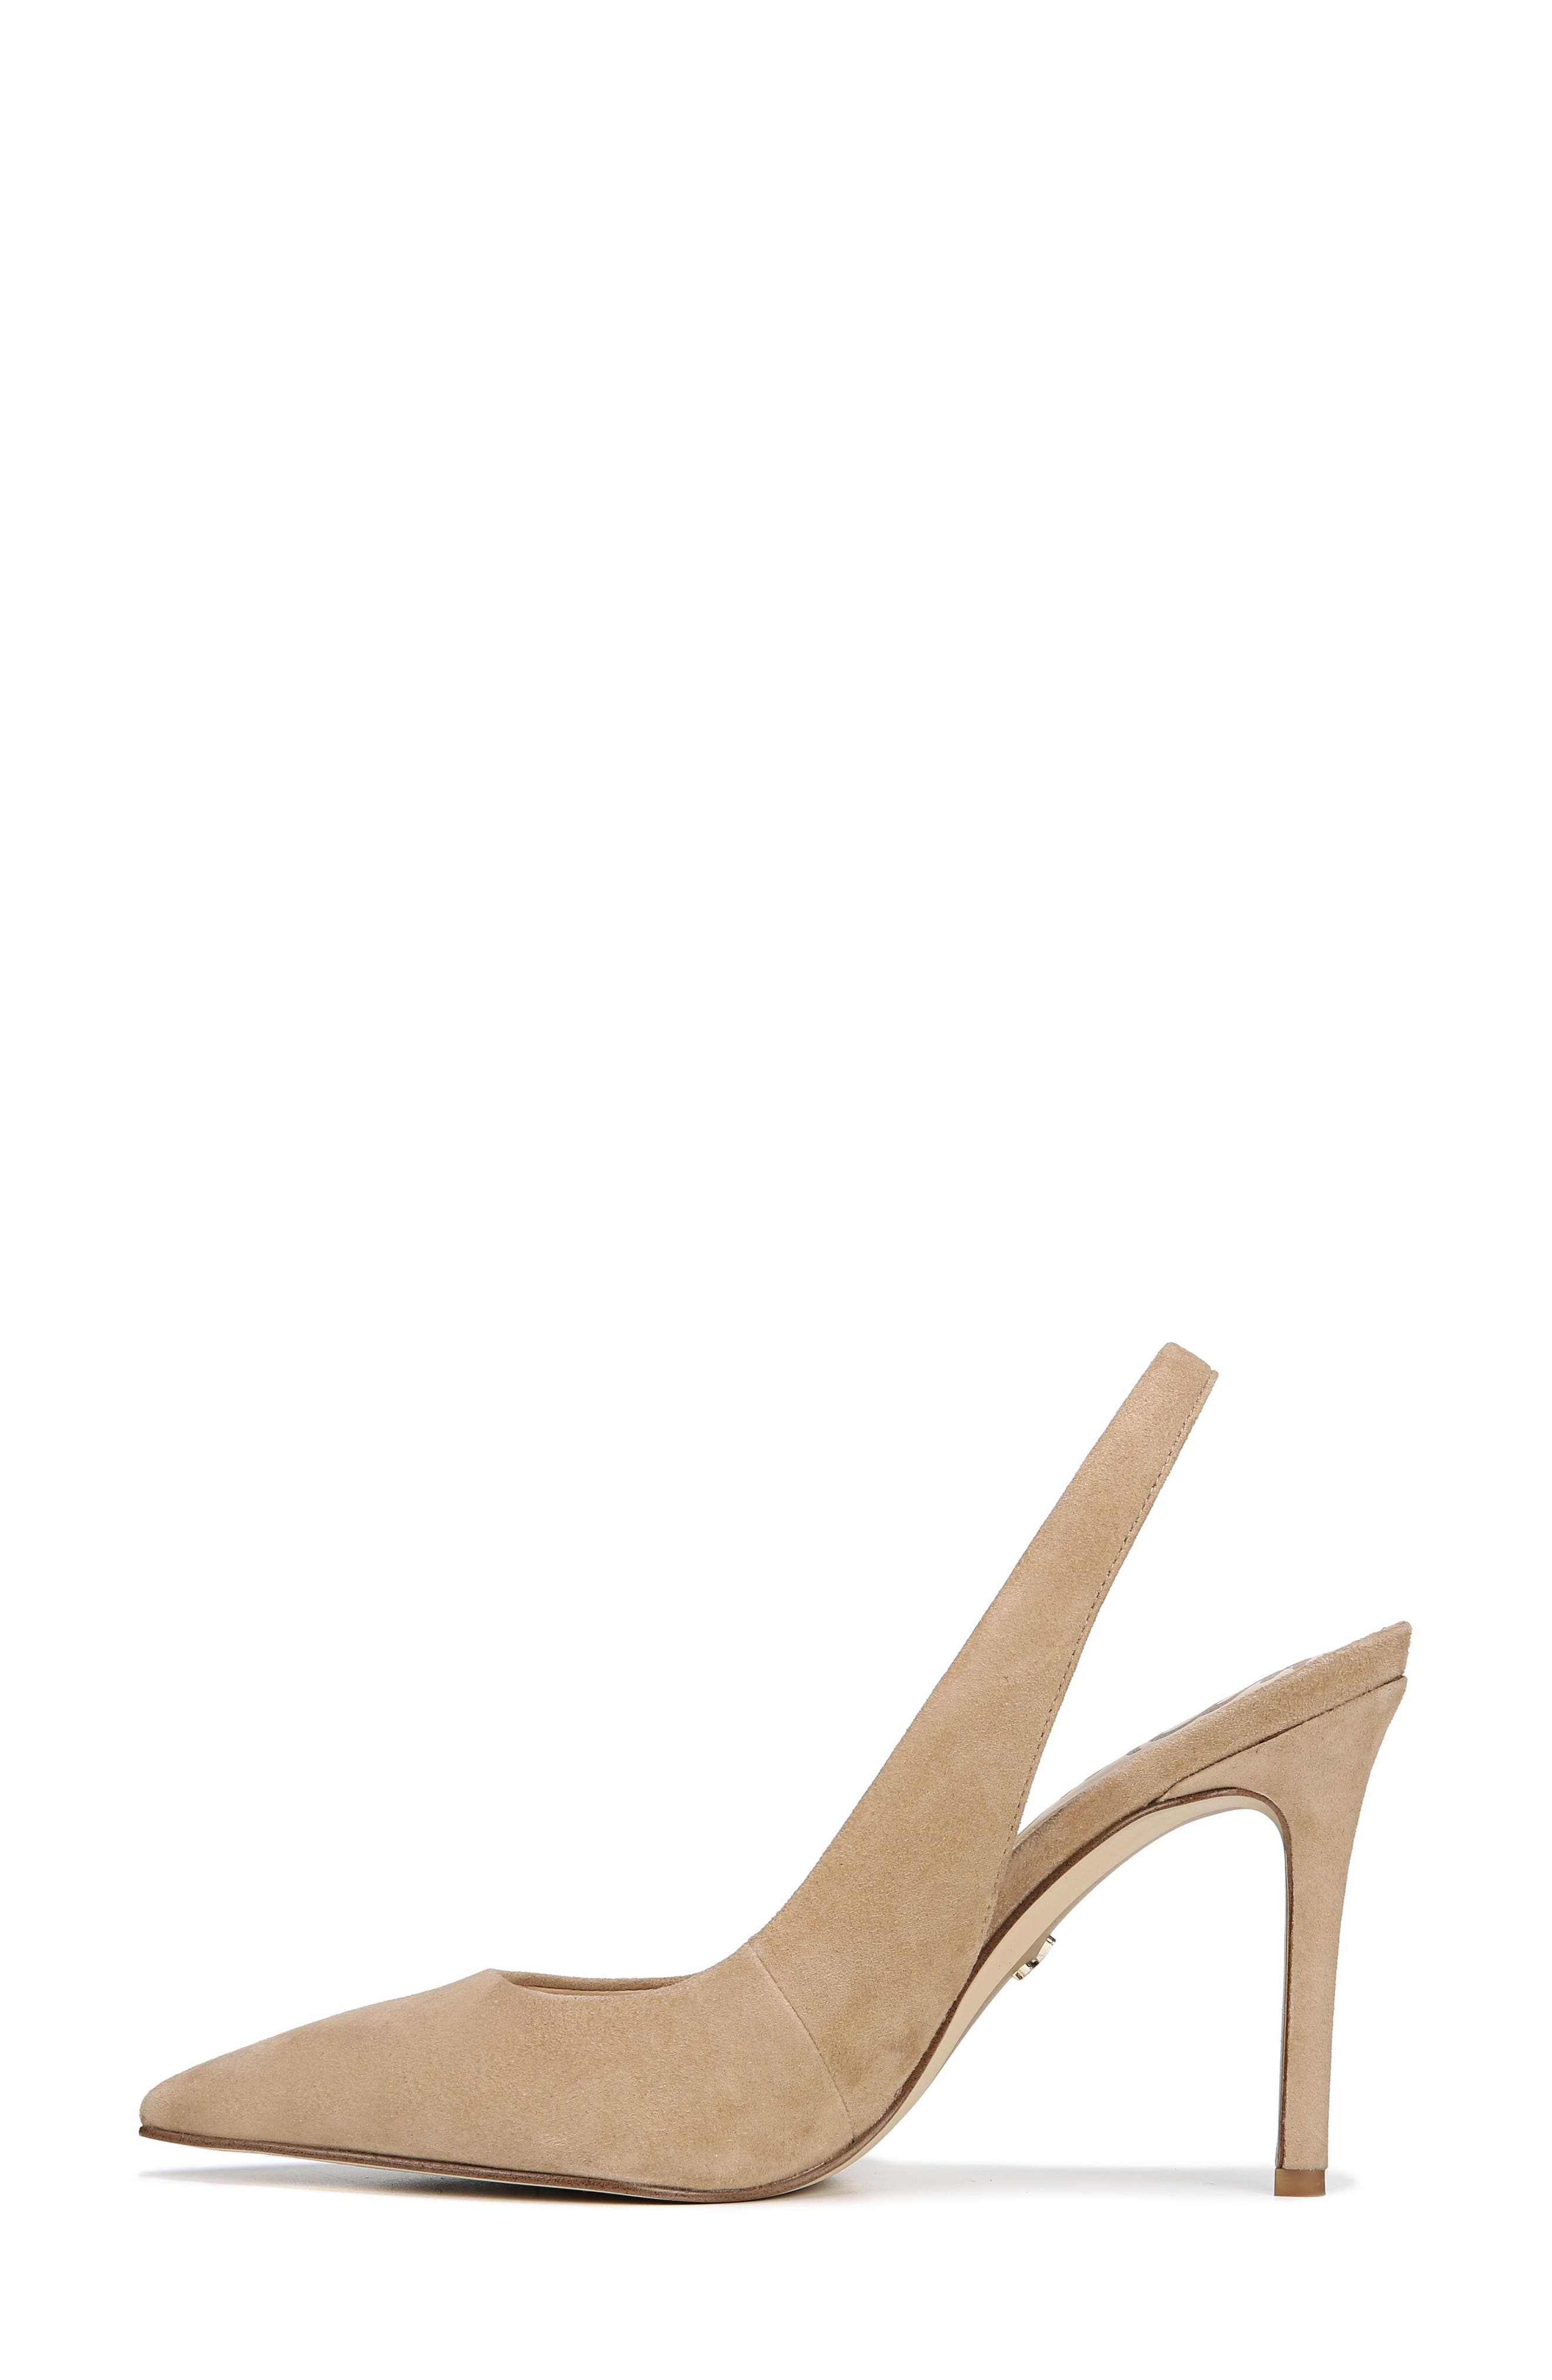 Hastings Slingback Pump,                             Alternate thumbnail 8, color,                             OATMEAL SUEDE LEATHER